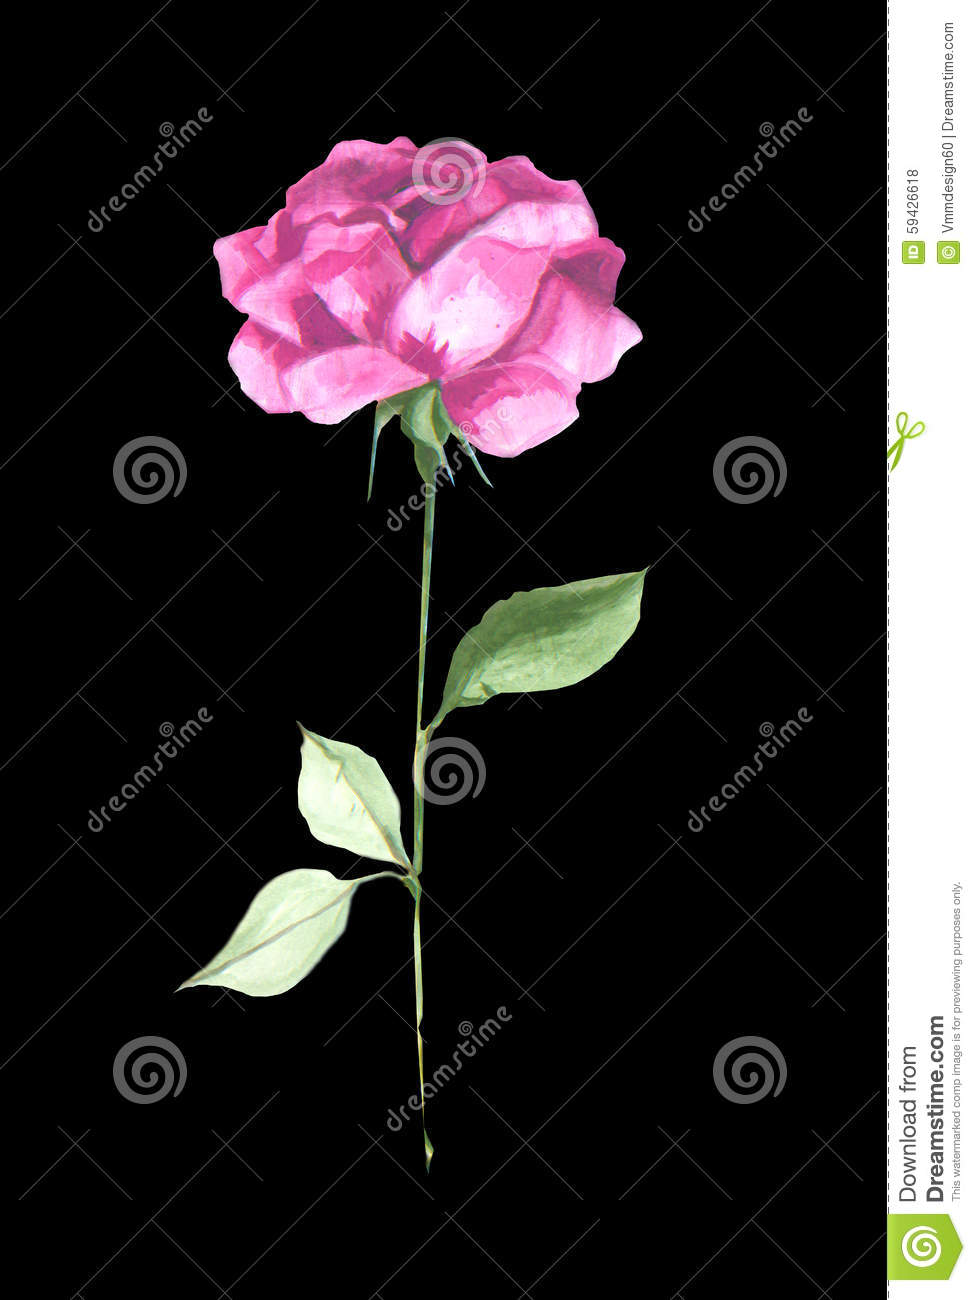 Rose Flower Beautiful Long Stem Watercolor On A Black ...